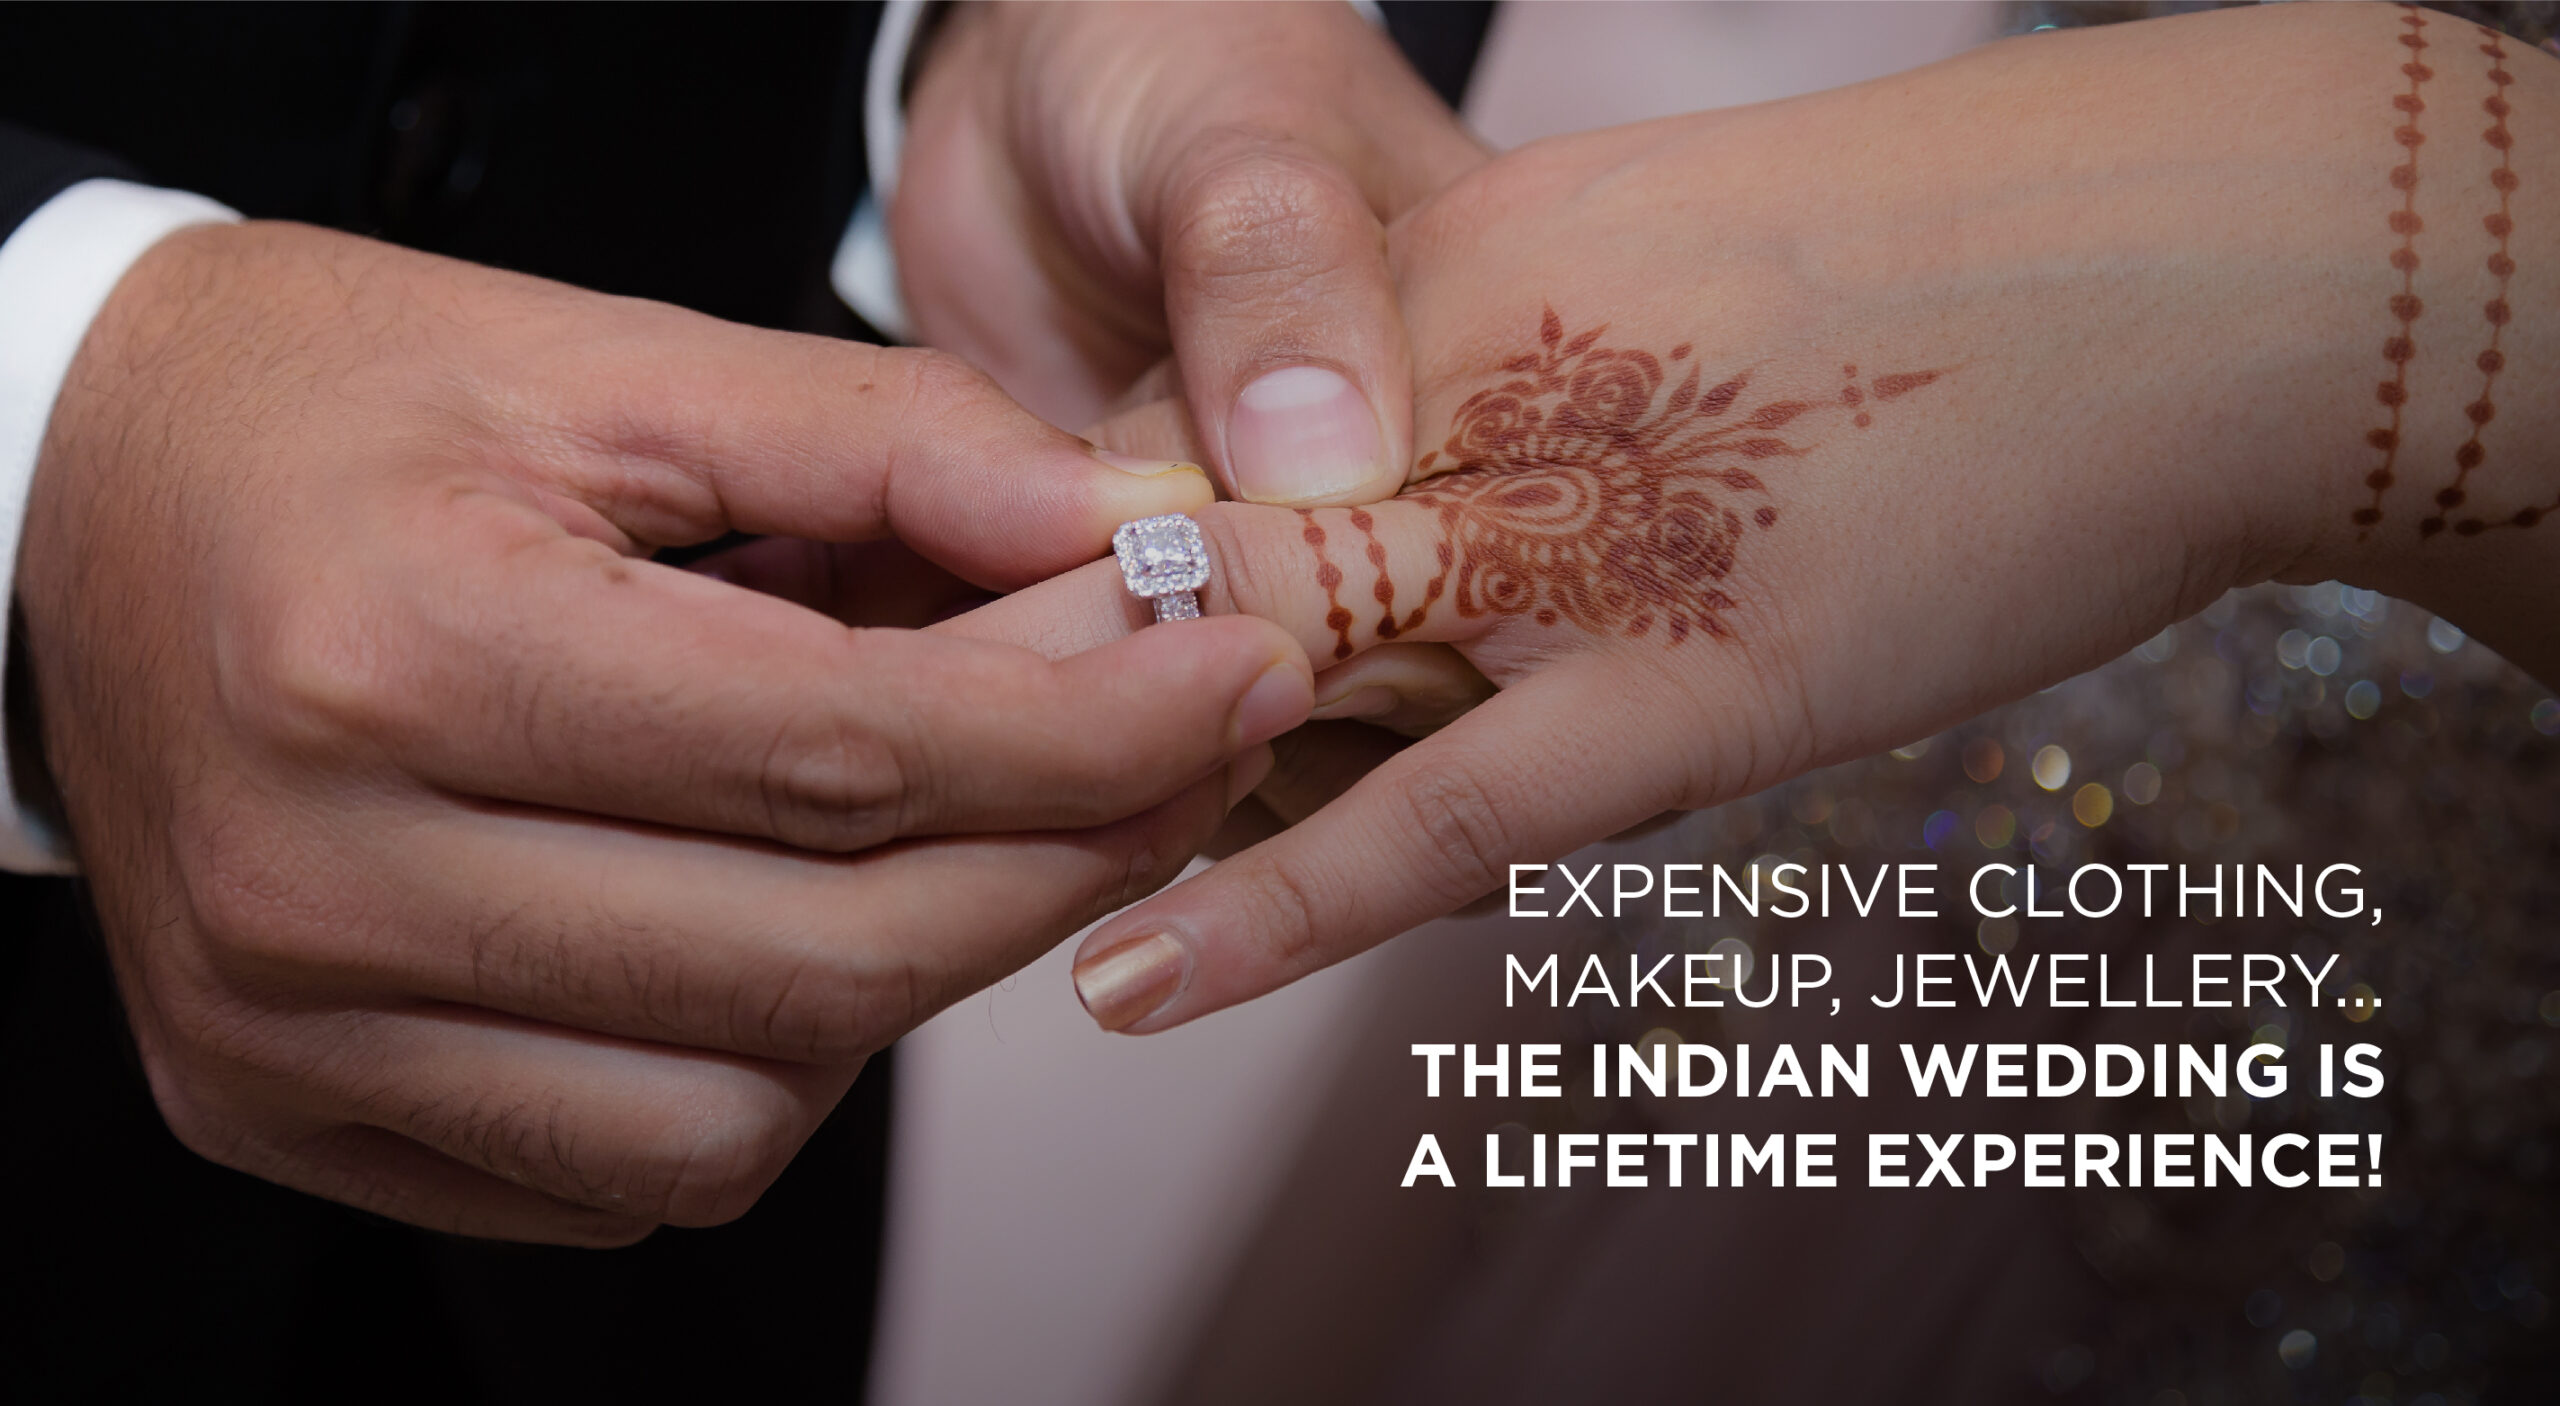 Expensive clothing, makeup, jewellery… the Indian wedding is a lifetime experience!